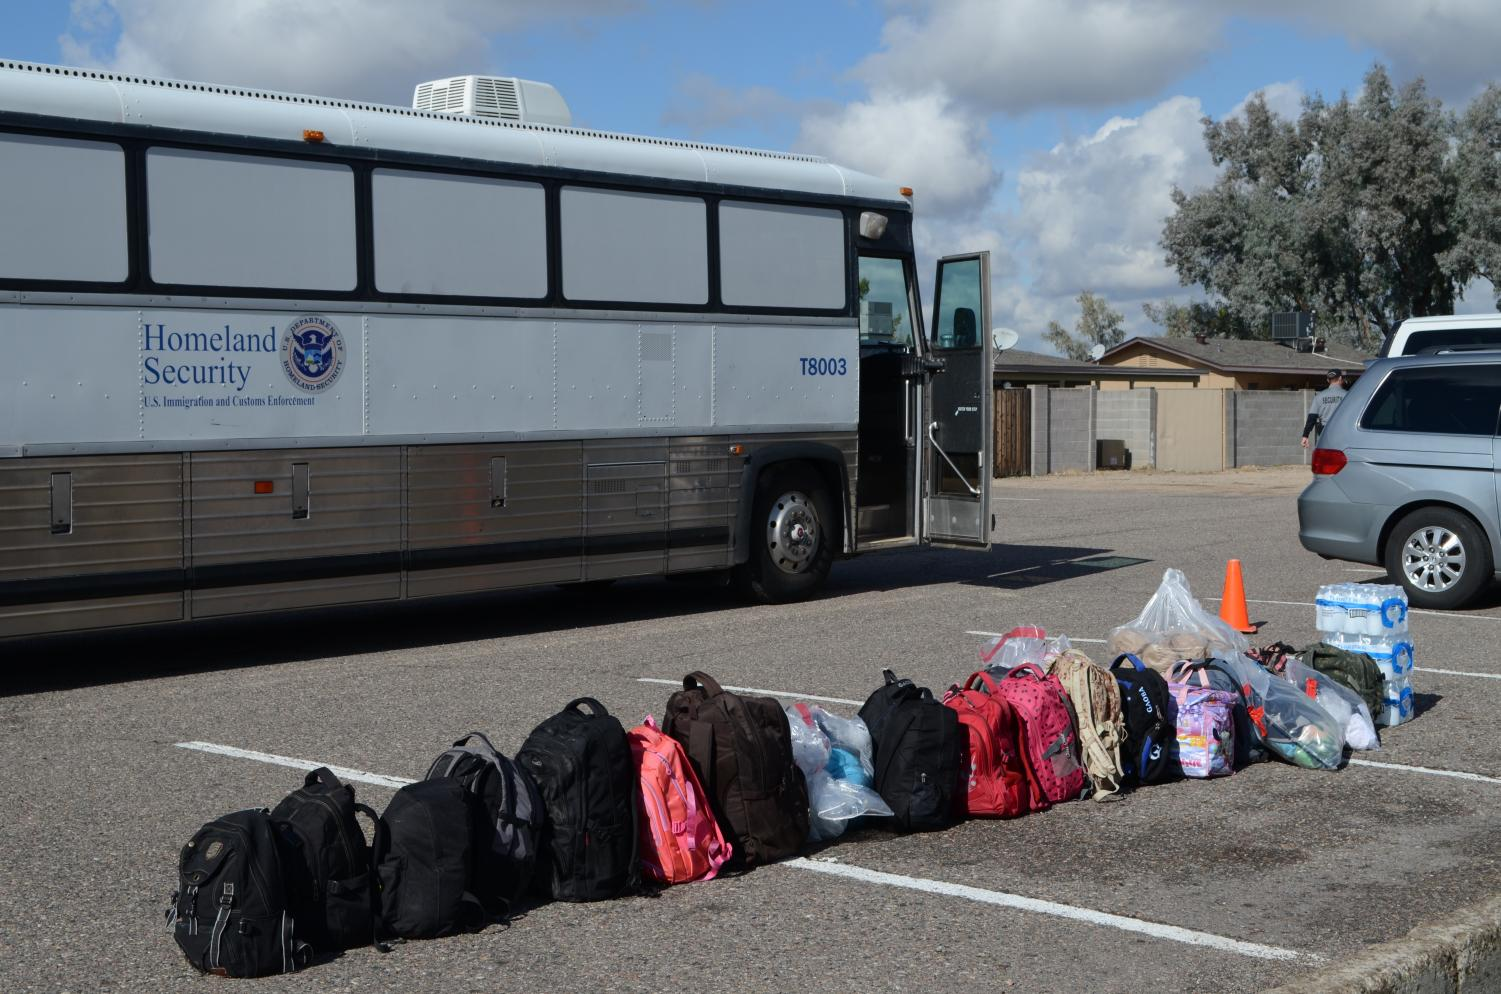 The+belongings+of+about+30+migrant+families+are+lined+up+in+the+church+parking+lot+after+being+taken+off+the+bus.+None+was+larger+than+a+backpack%2C+and+some+were+plastic+bags+provided+to+them+by+ICE.